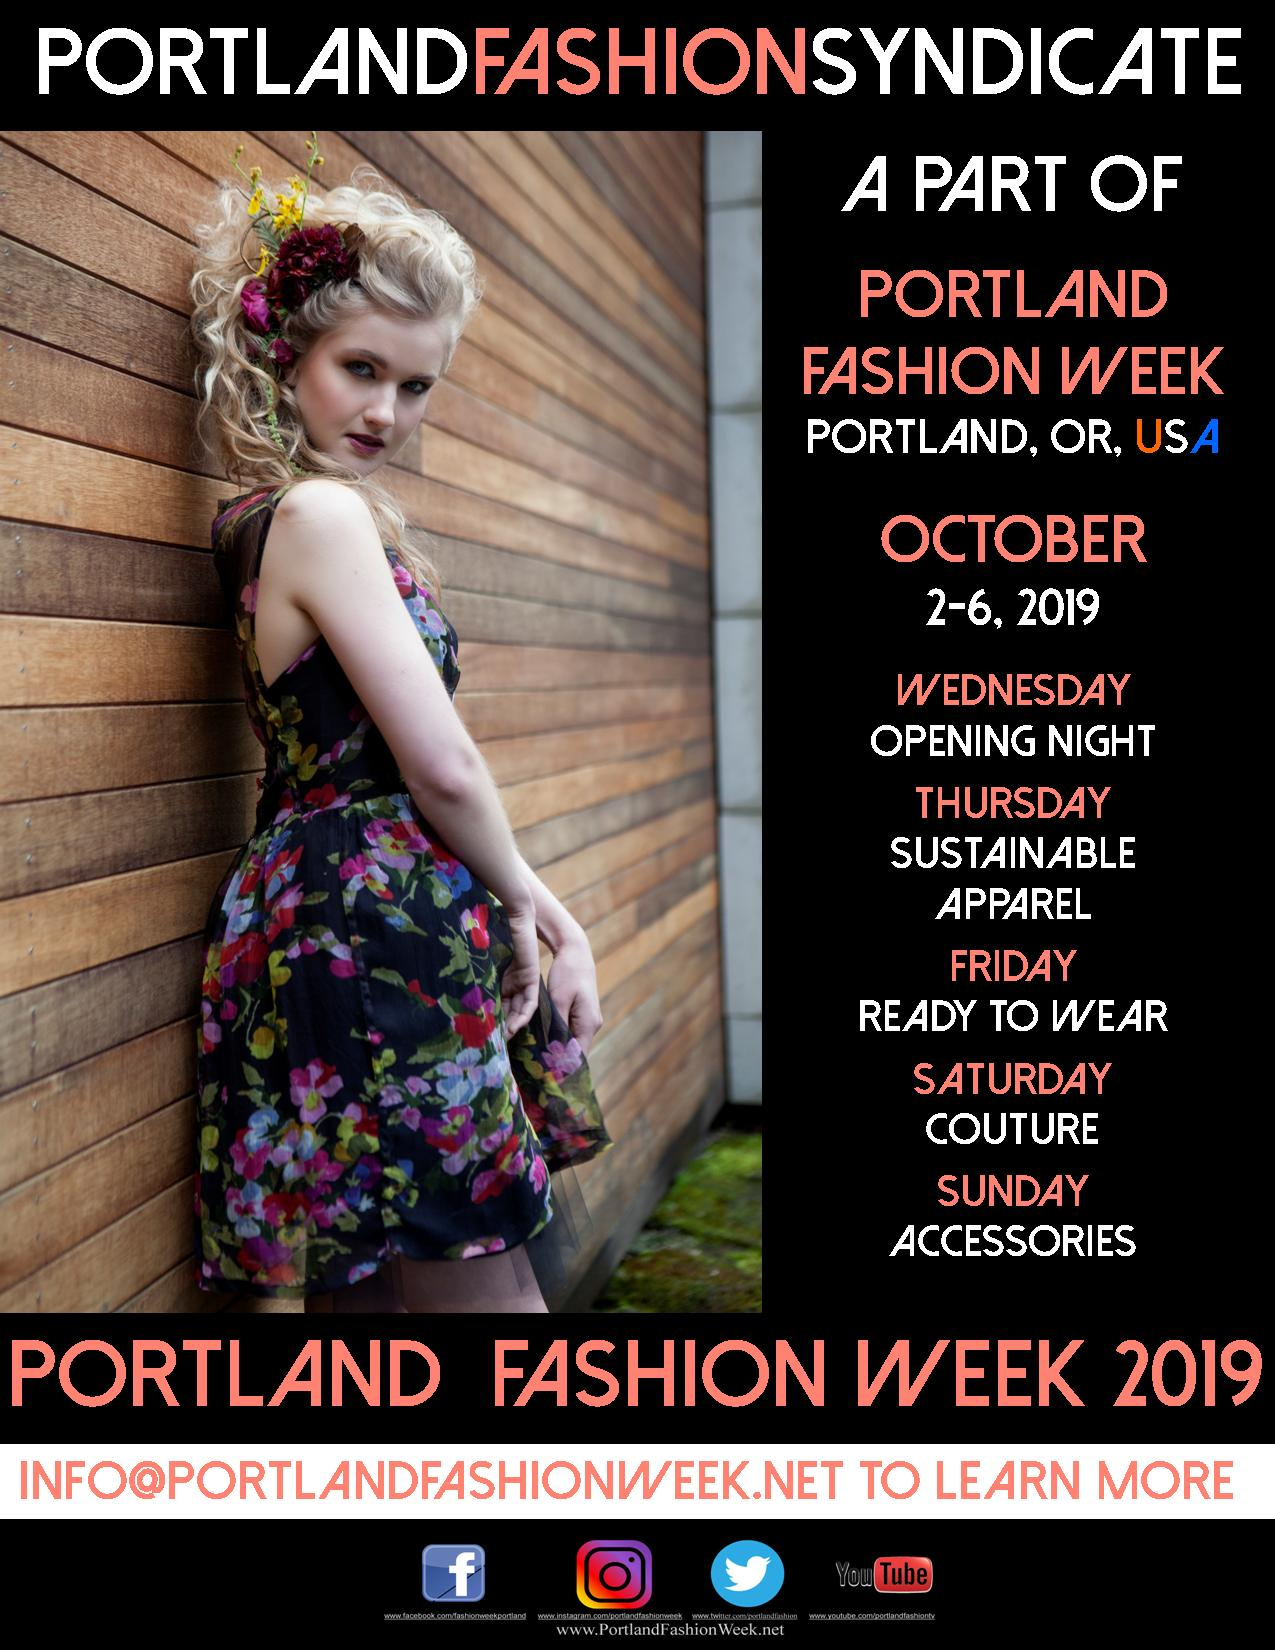 """The Portland Fashion Syndicate - The world's Portlands have united to show some of the most clever and stylish apparel on any runway. Watch for our """"Portland"""" Designers each night of the week!"""